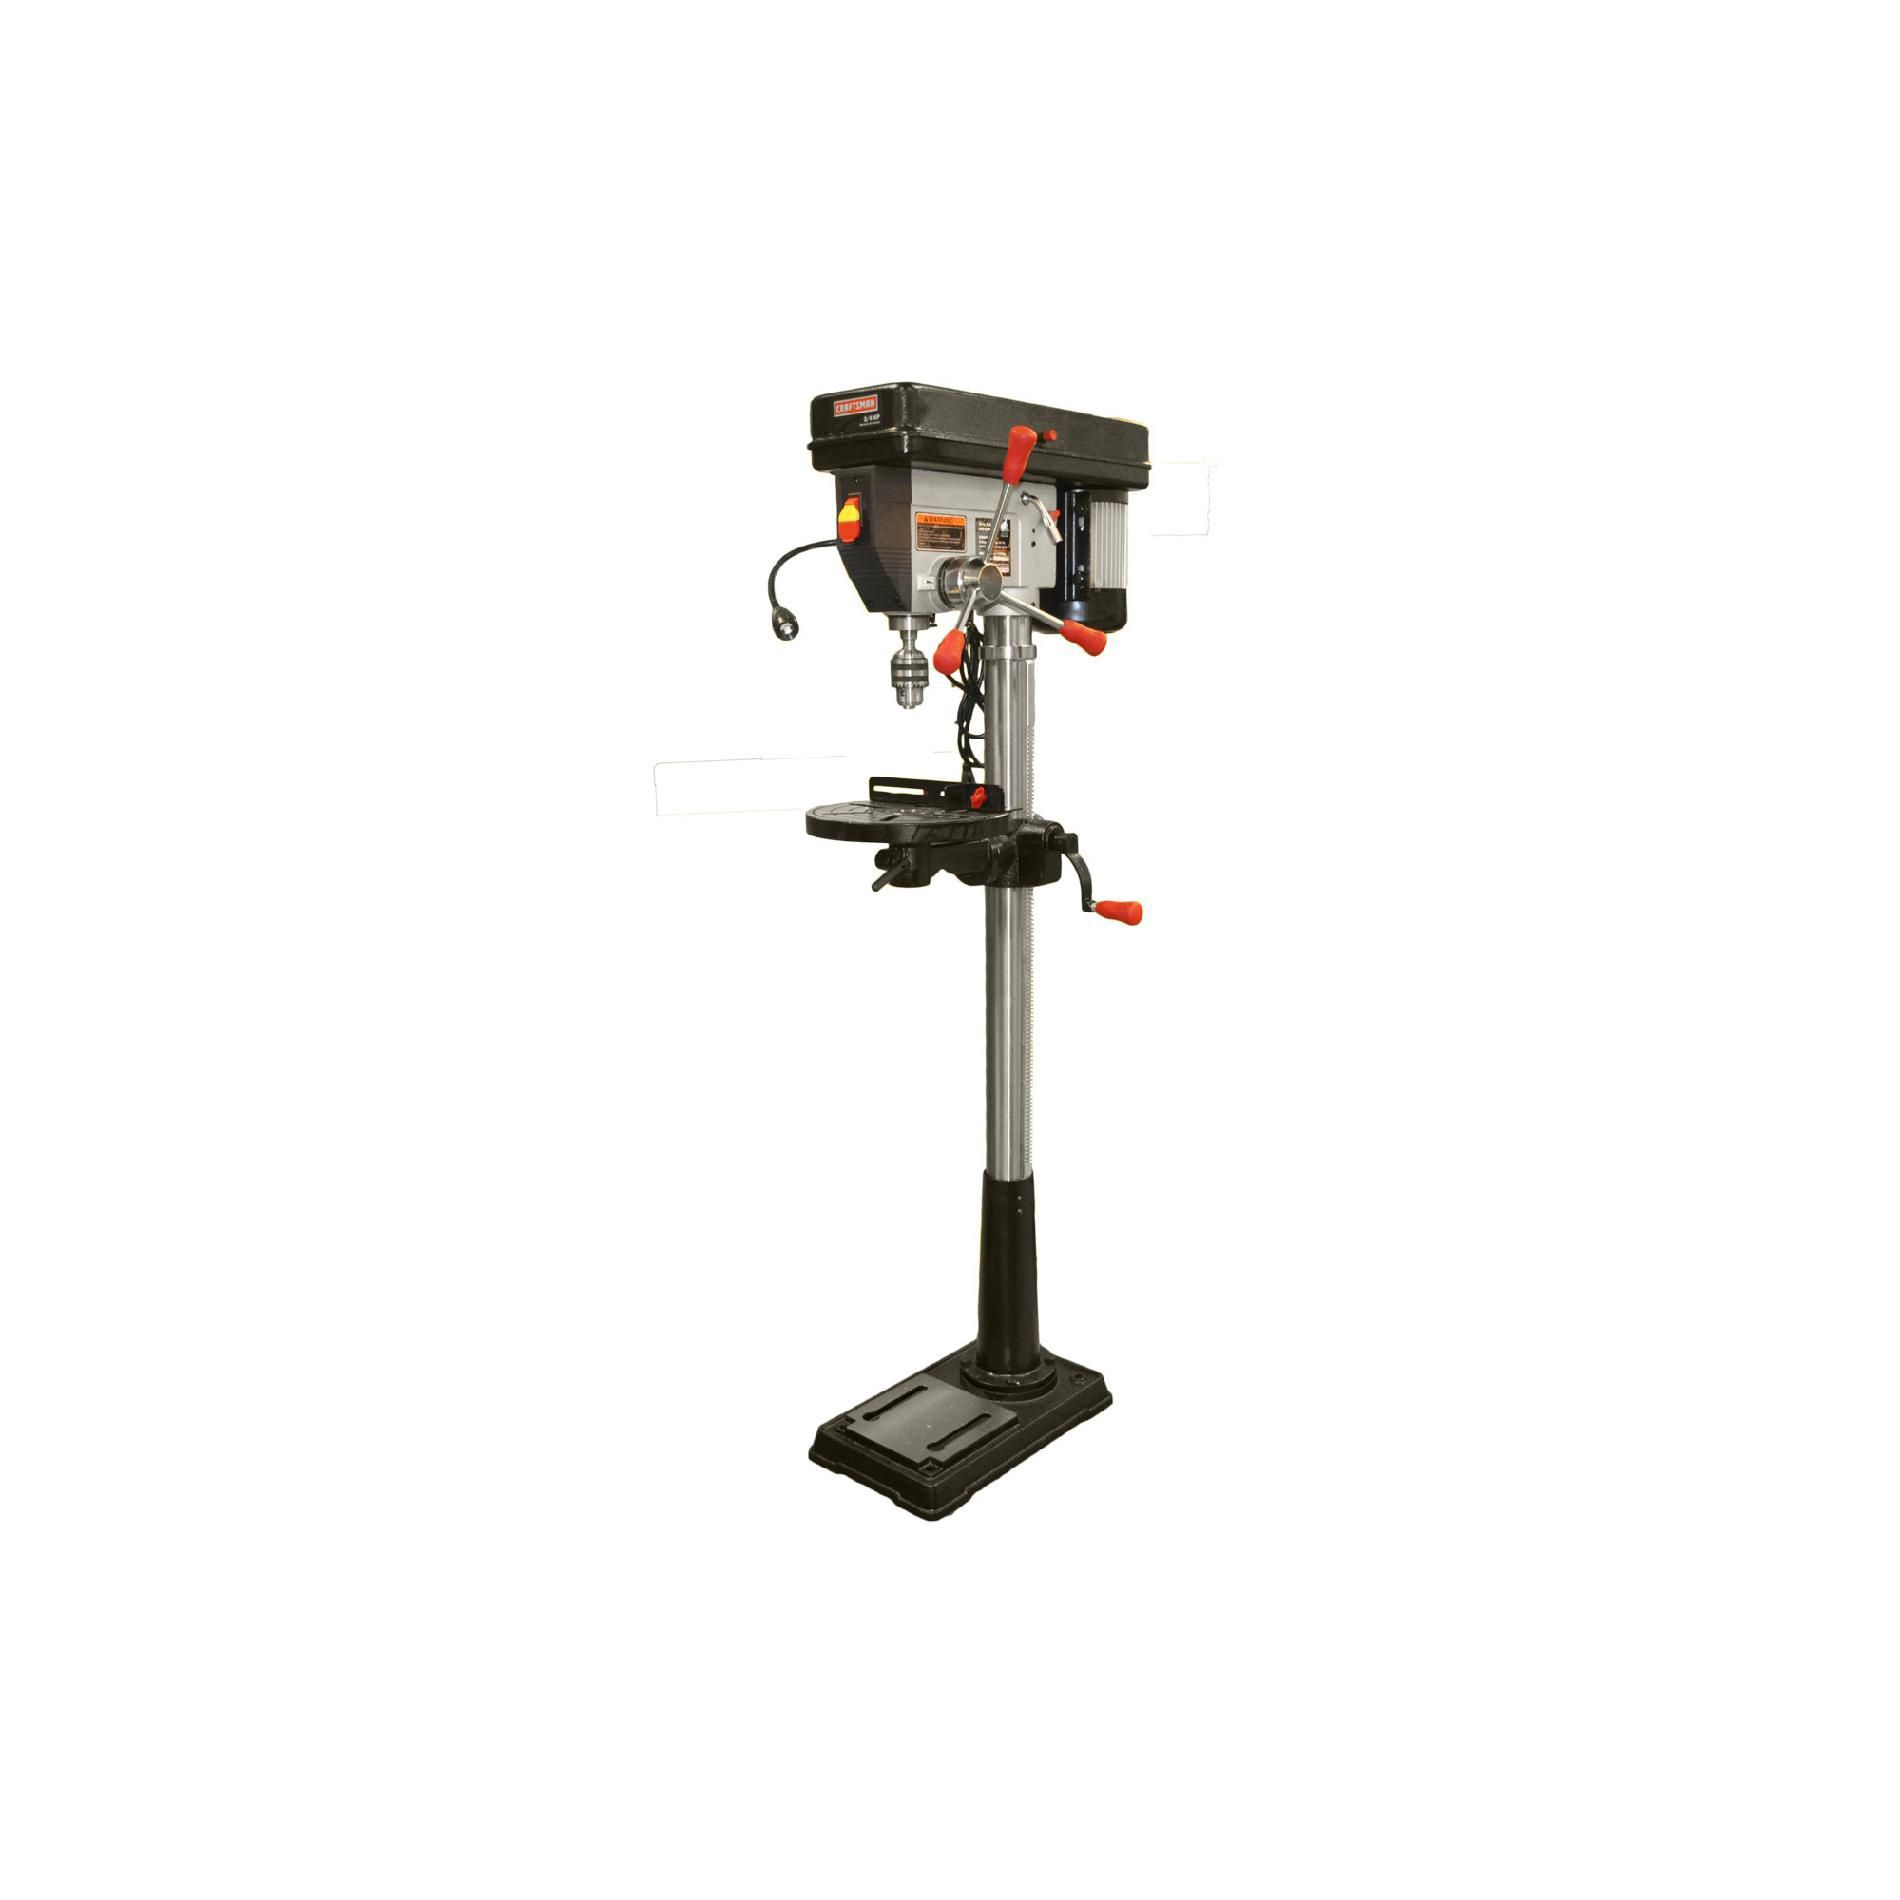 15 Drill Press With Laser And Led Light Power Your Way